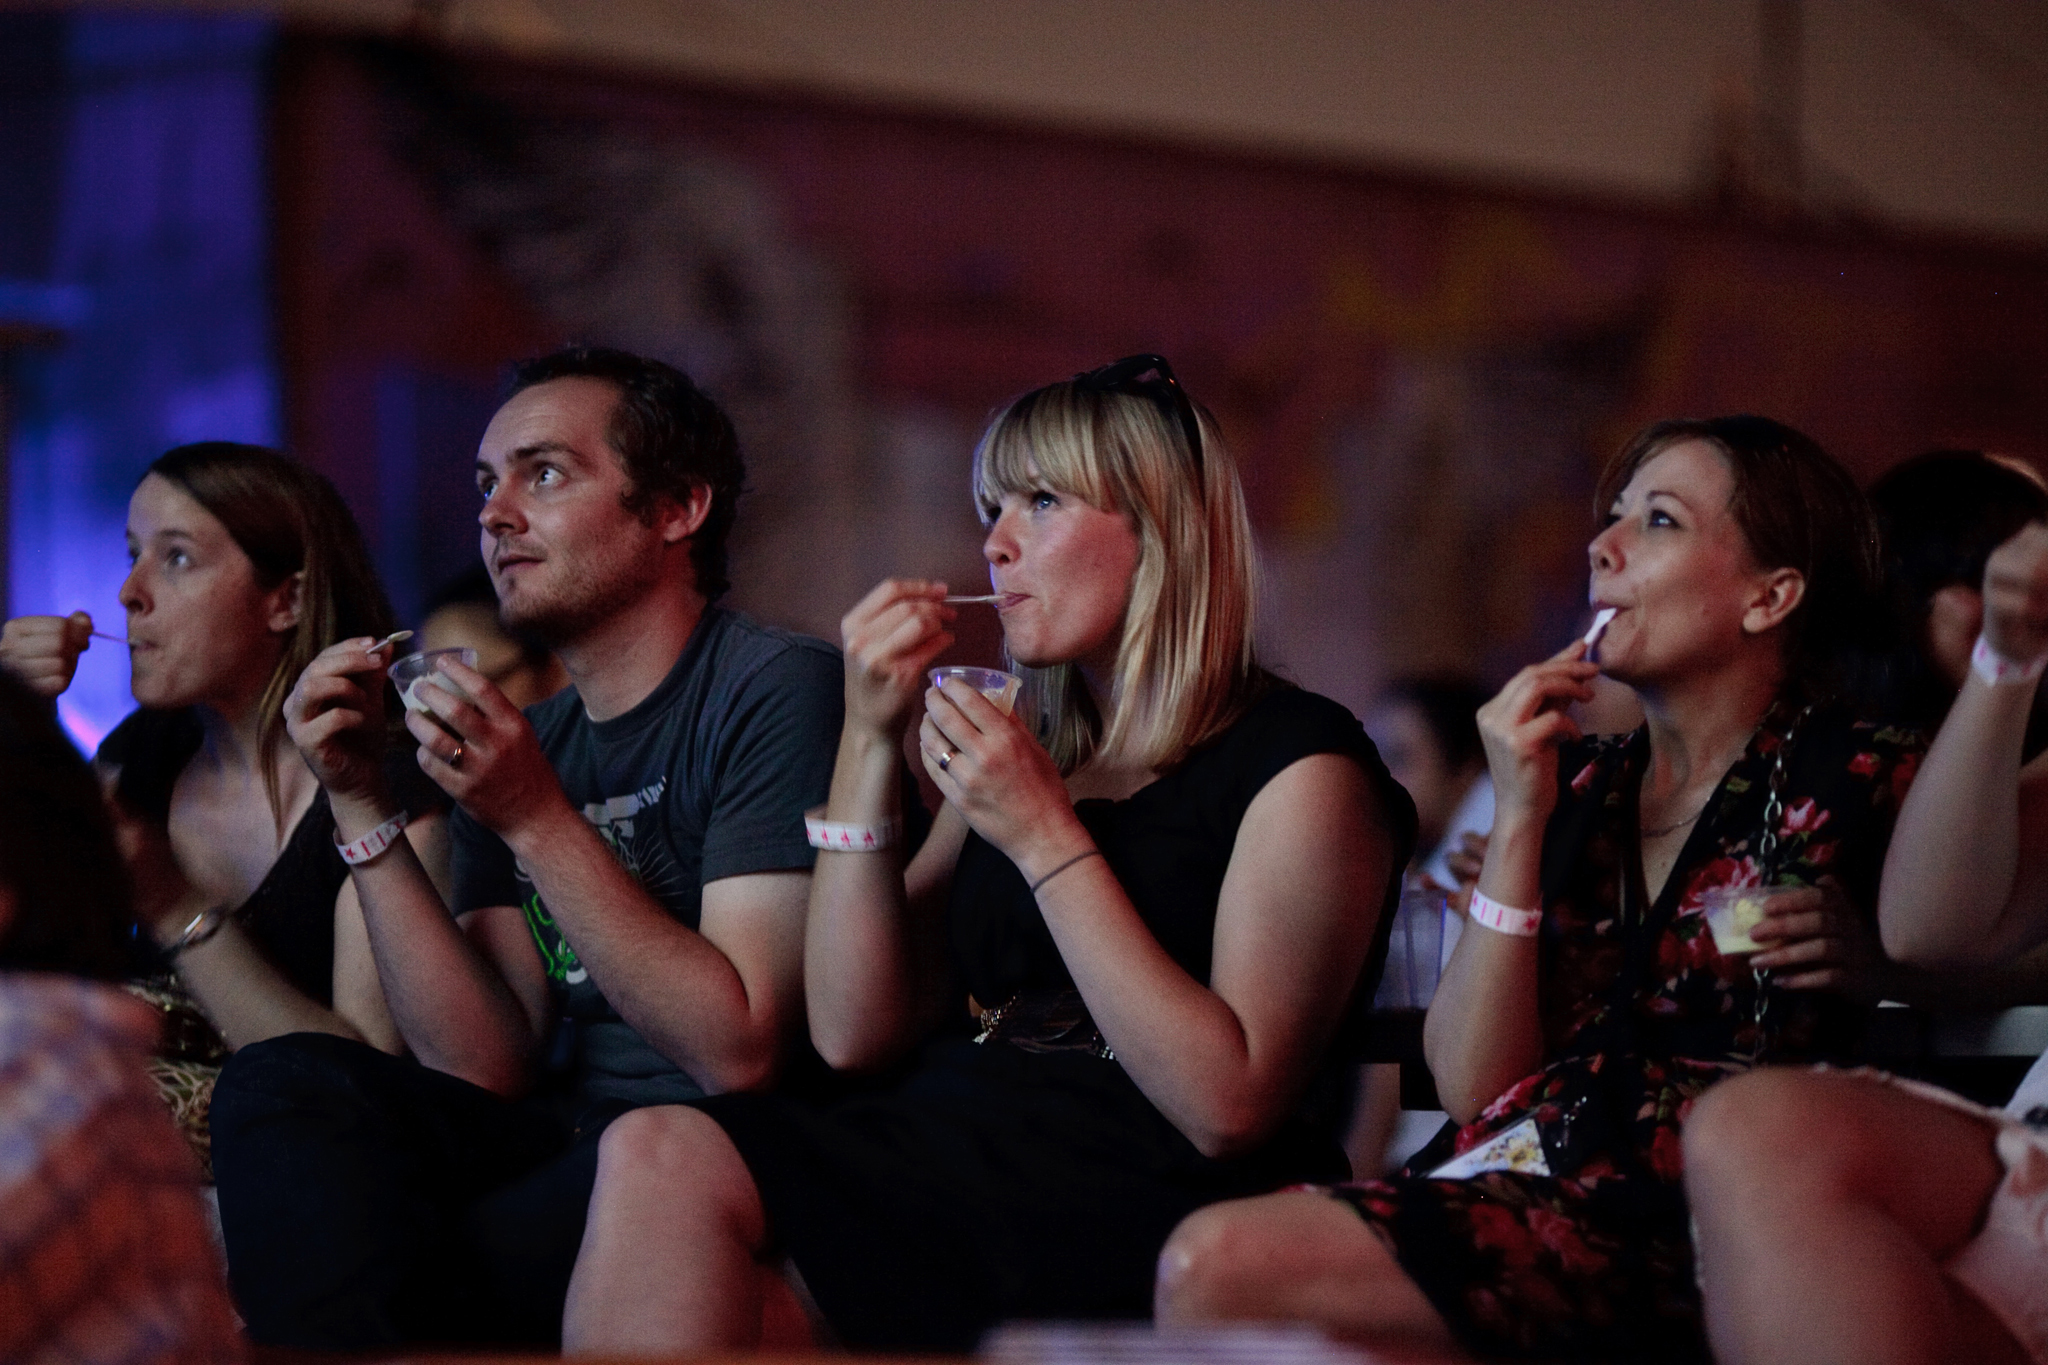 Forgo soda and stale popcorn and chow down at the NYC Food Film Festival